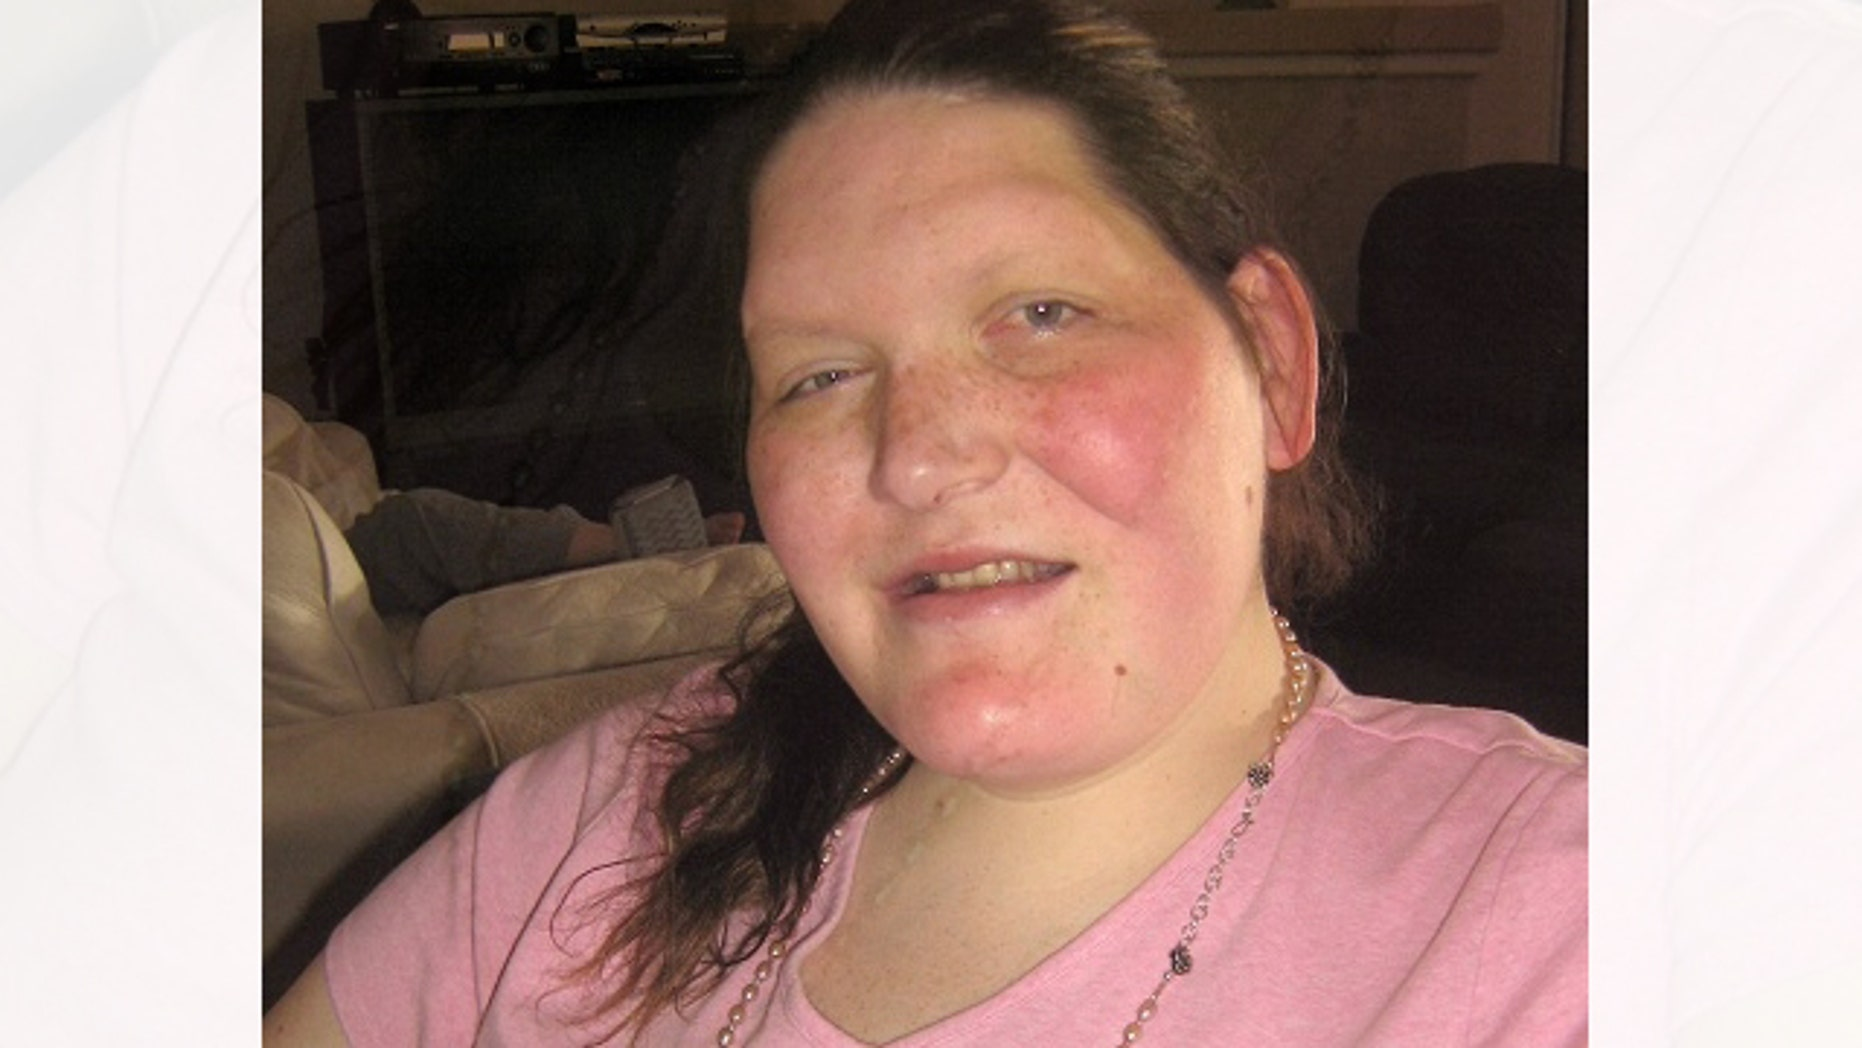 Tanya Angus, 33, has acromegaly.